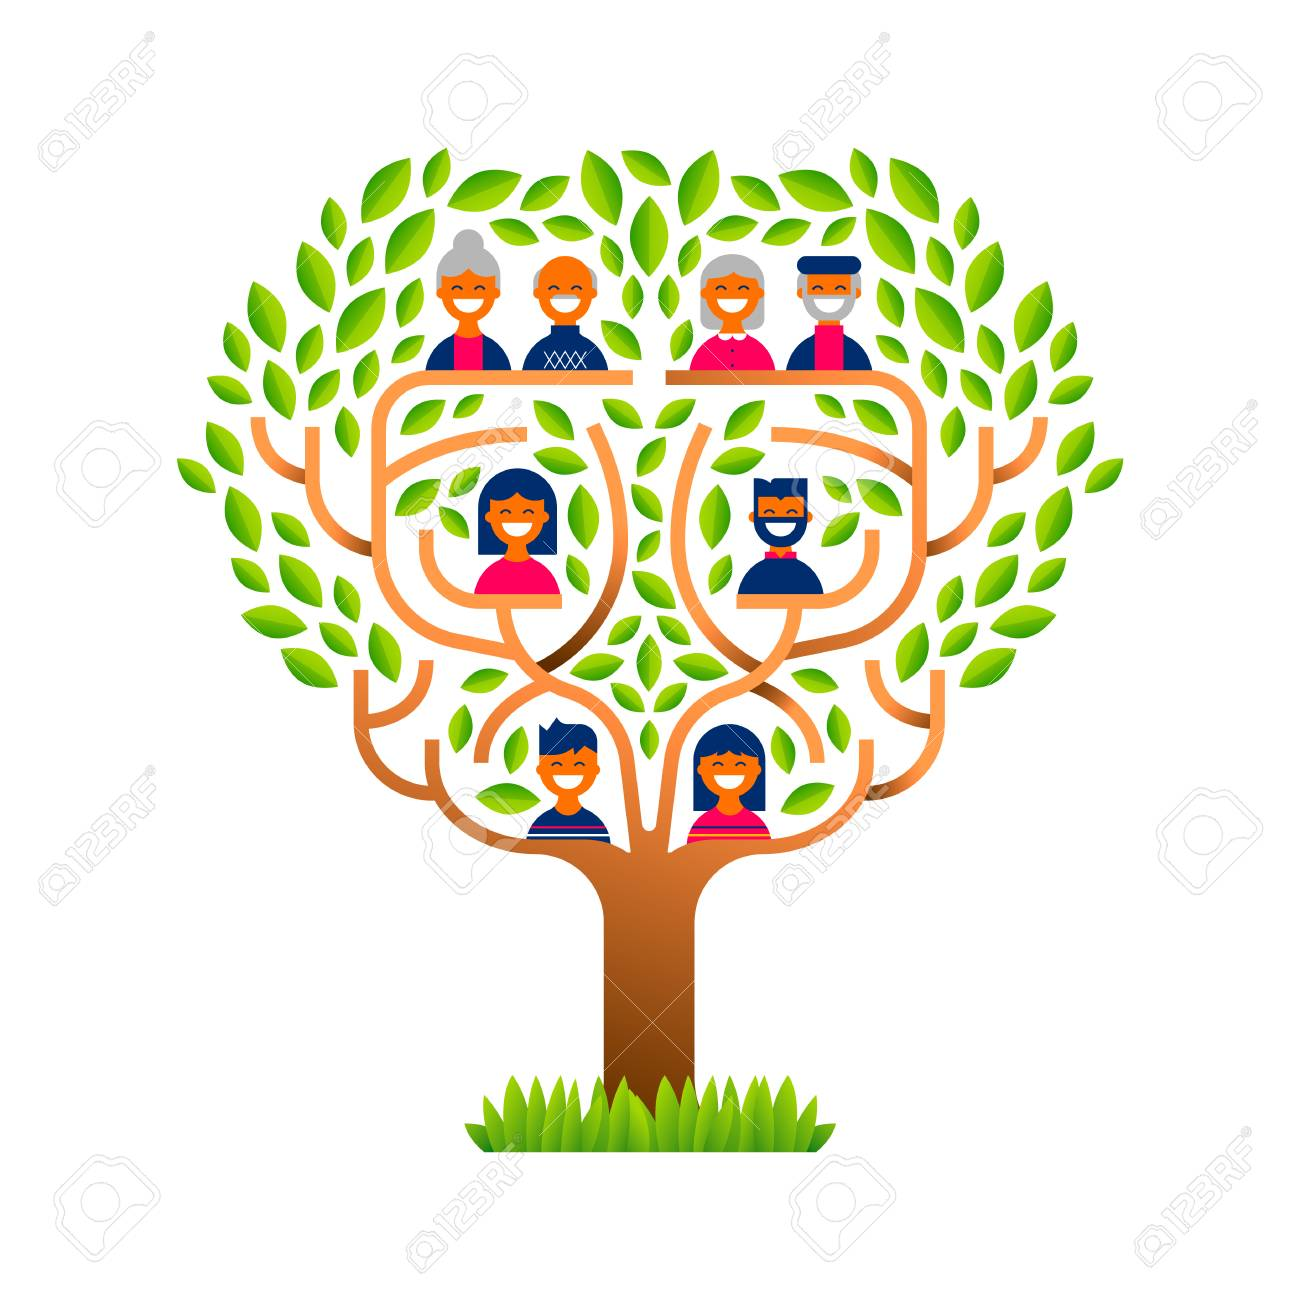 Big family tree template concept with people icons for life generations